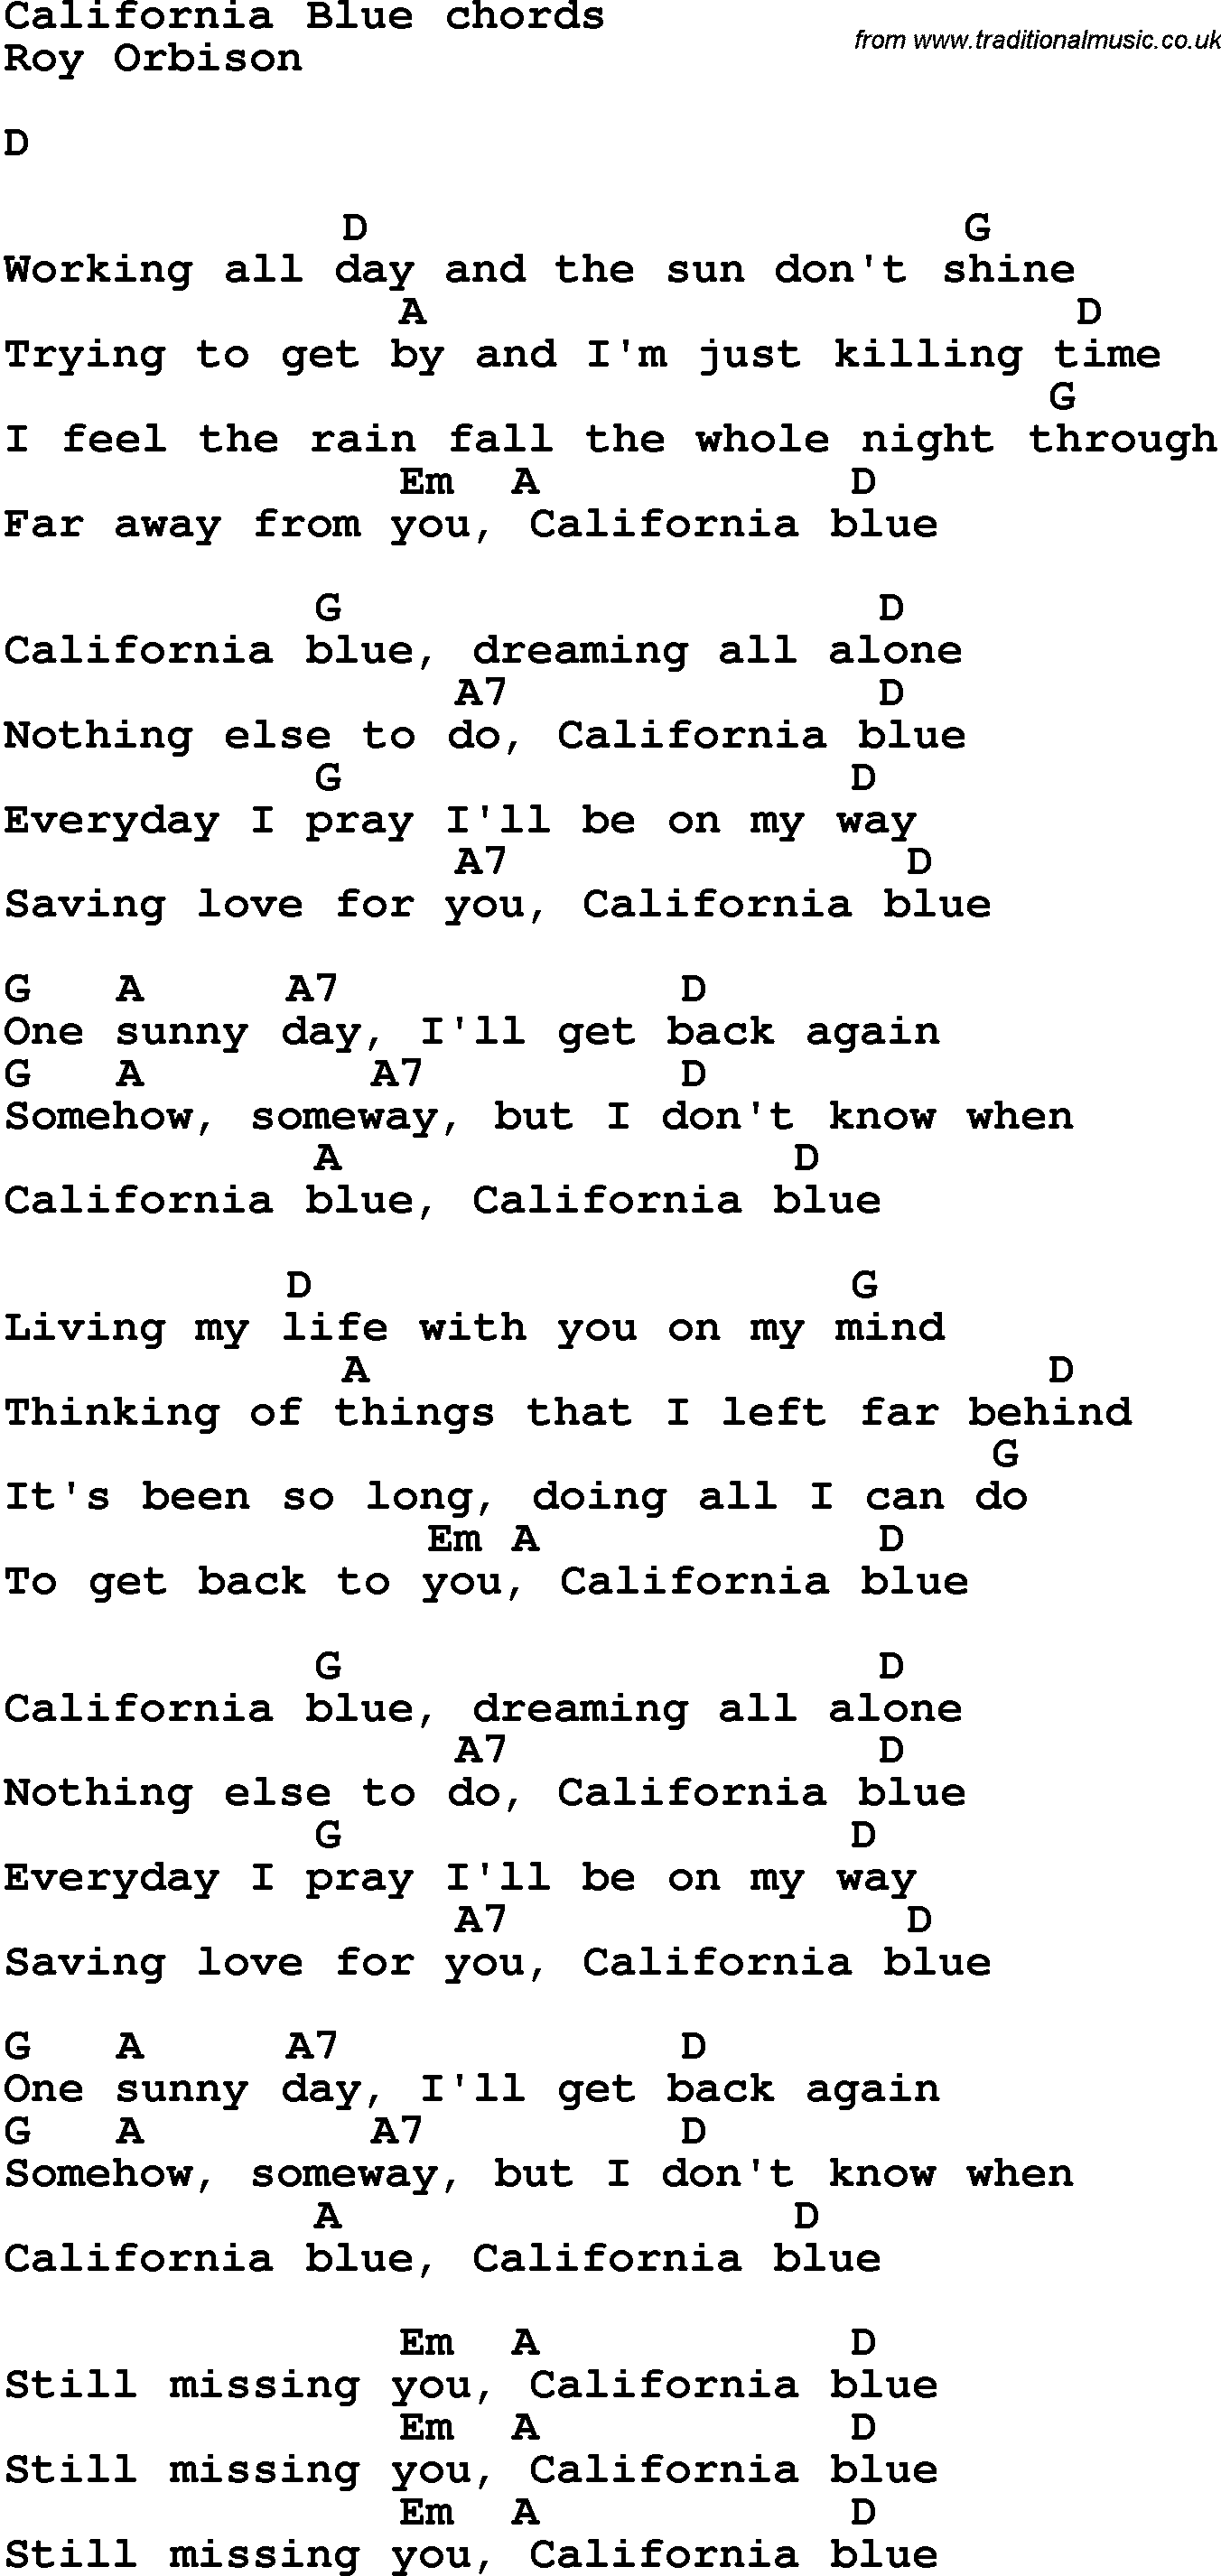 Song Lyrics With Guitar Chords For California Blue Guitar Chords